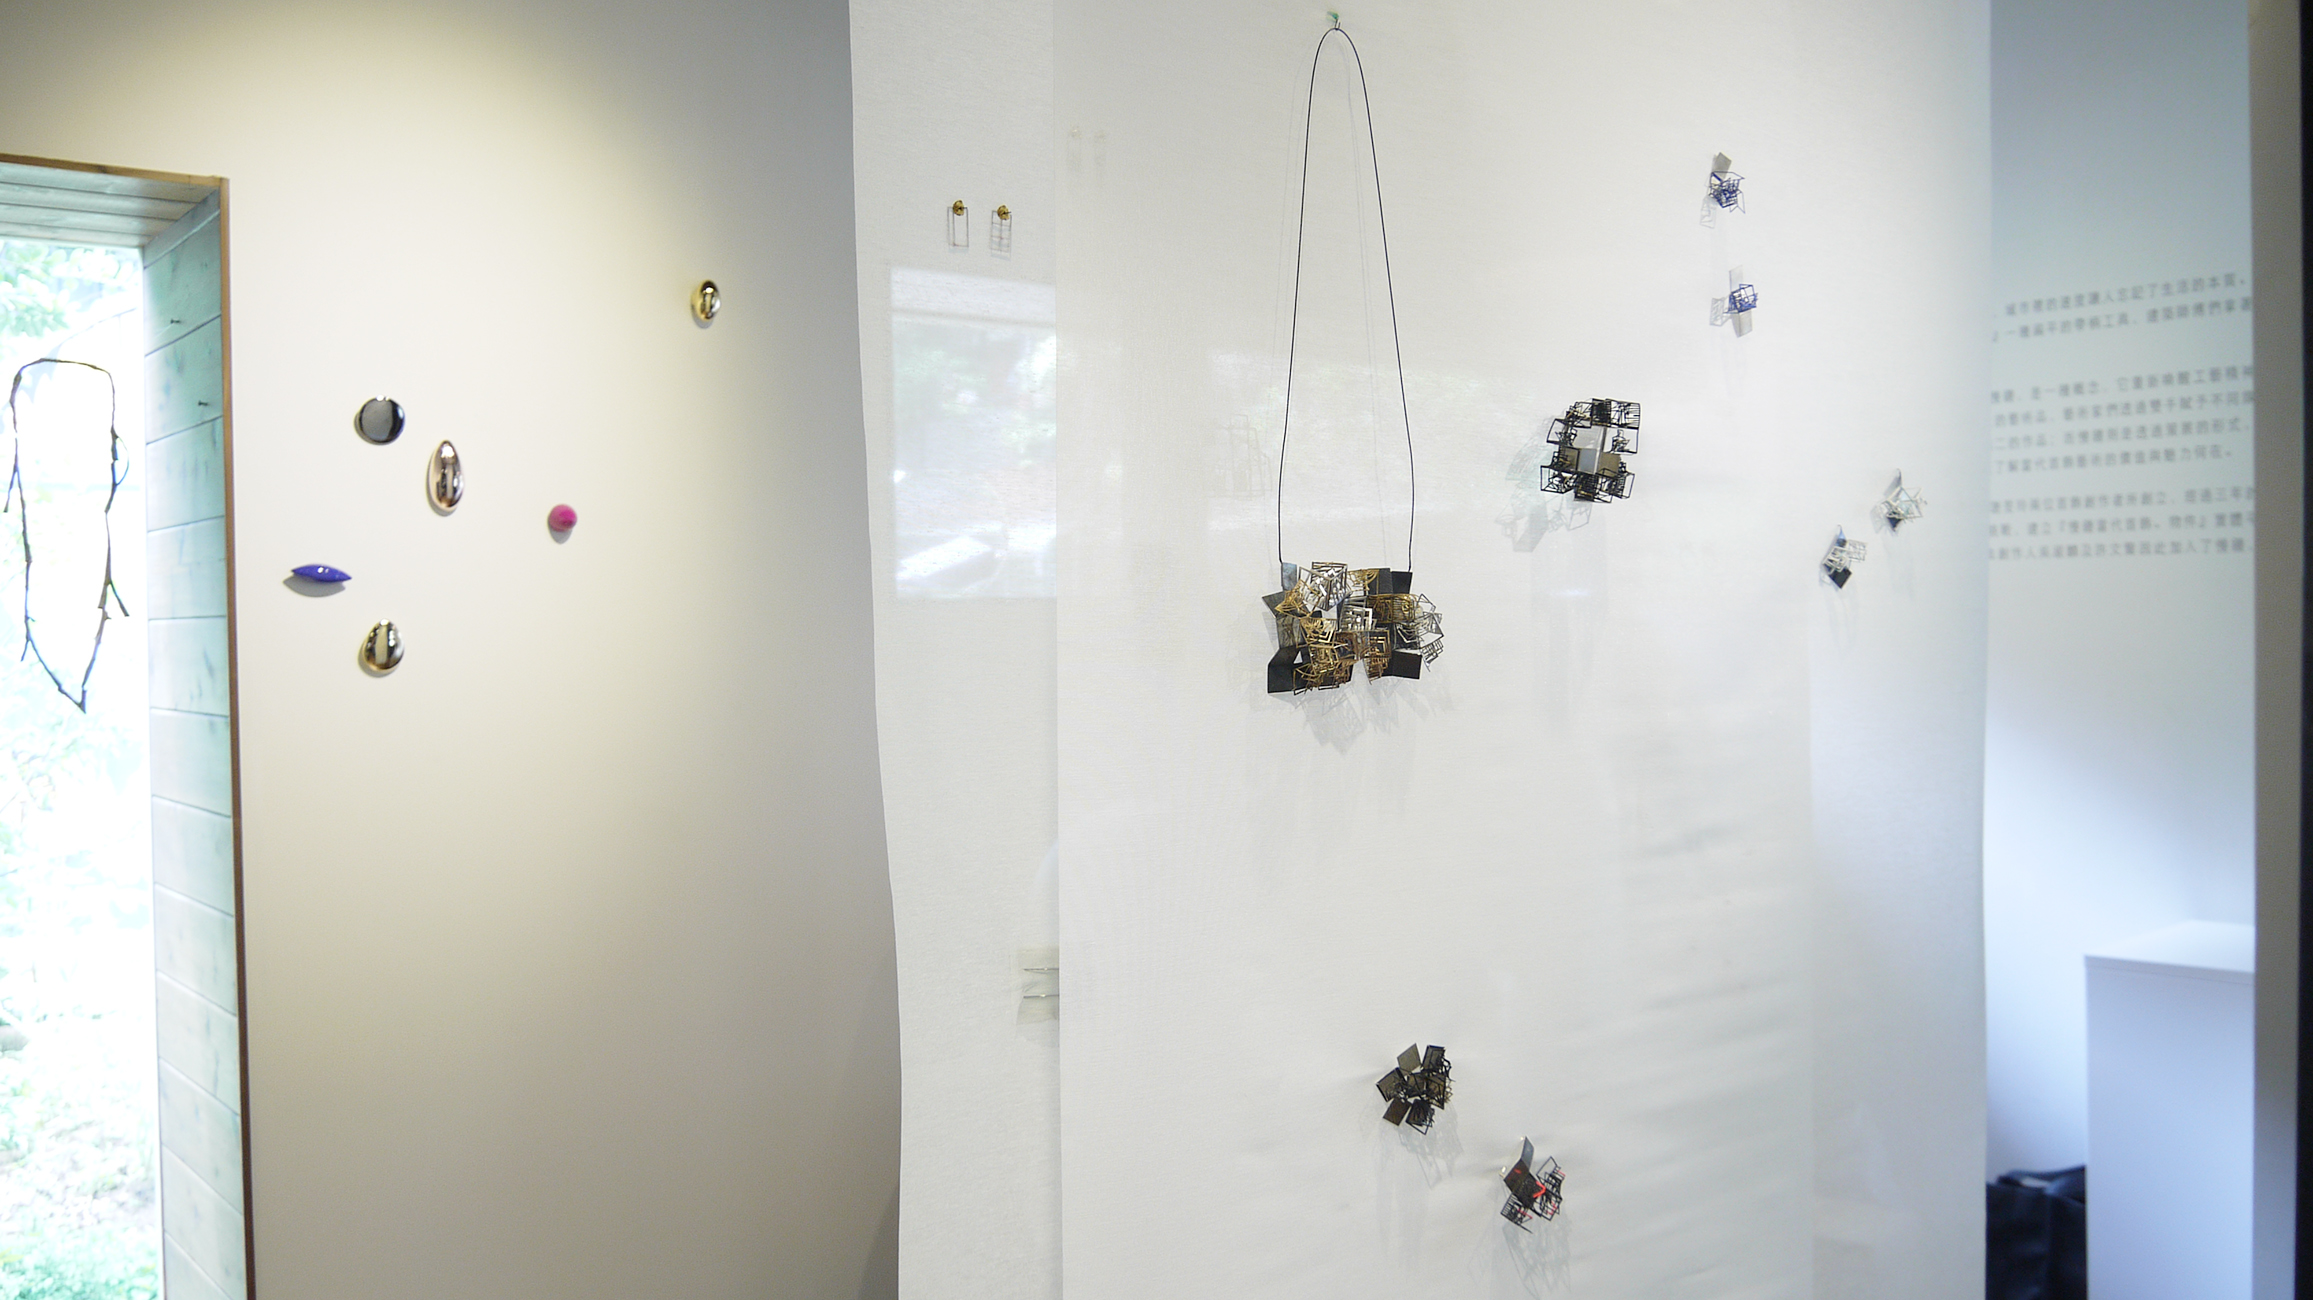 click for more about WEAR / AWARE – New Asian Jewellery 『新東西』 - 亞洲當代首飾新秀展